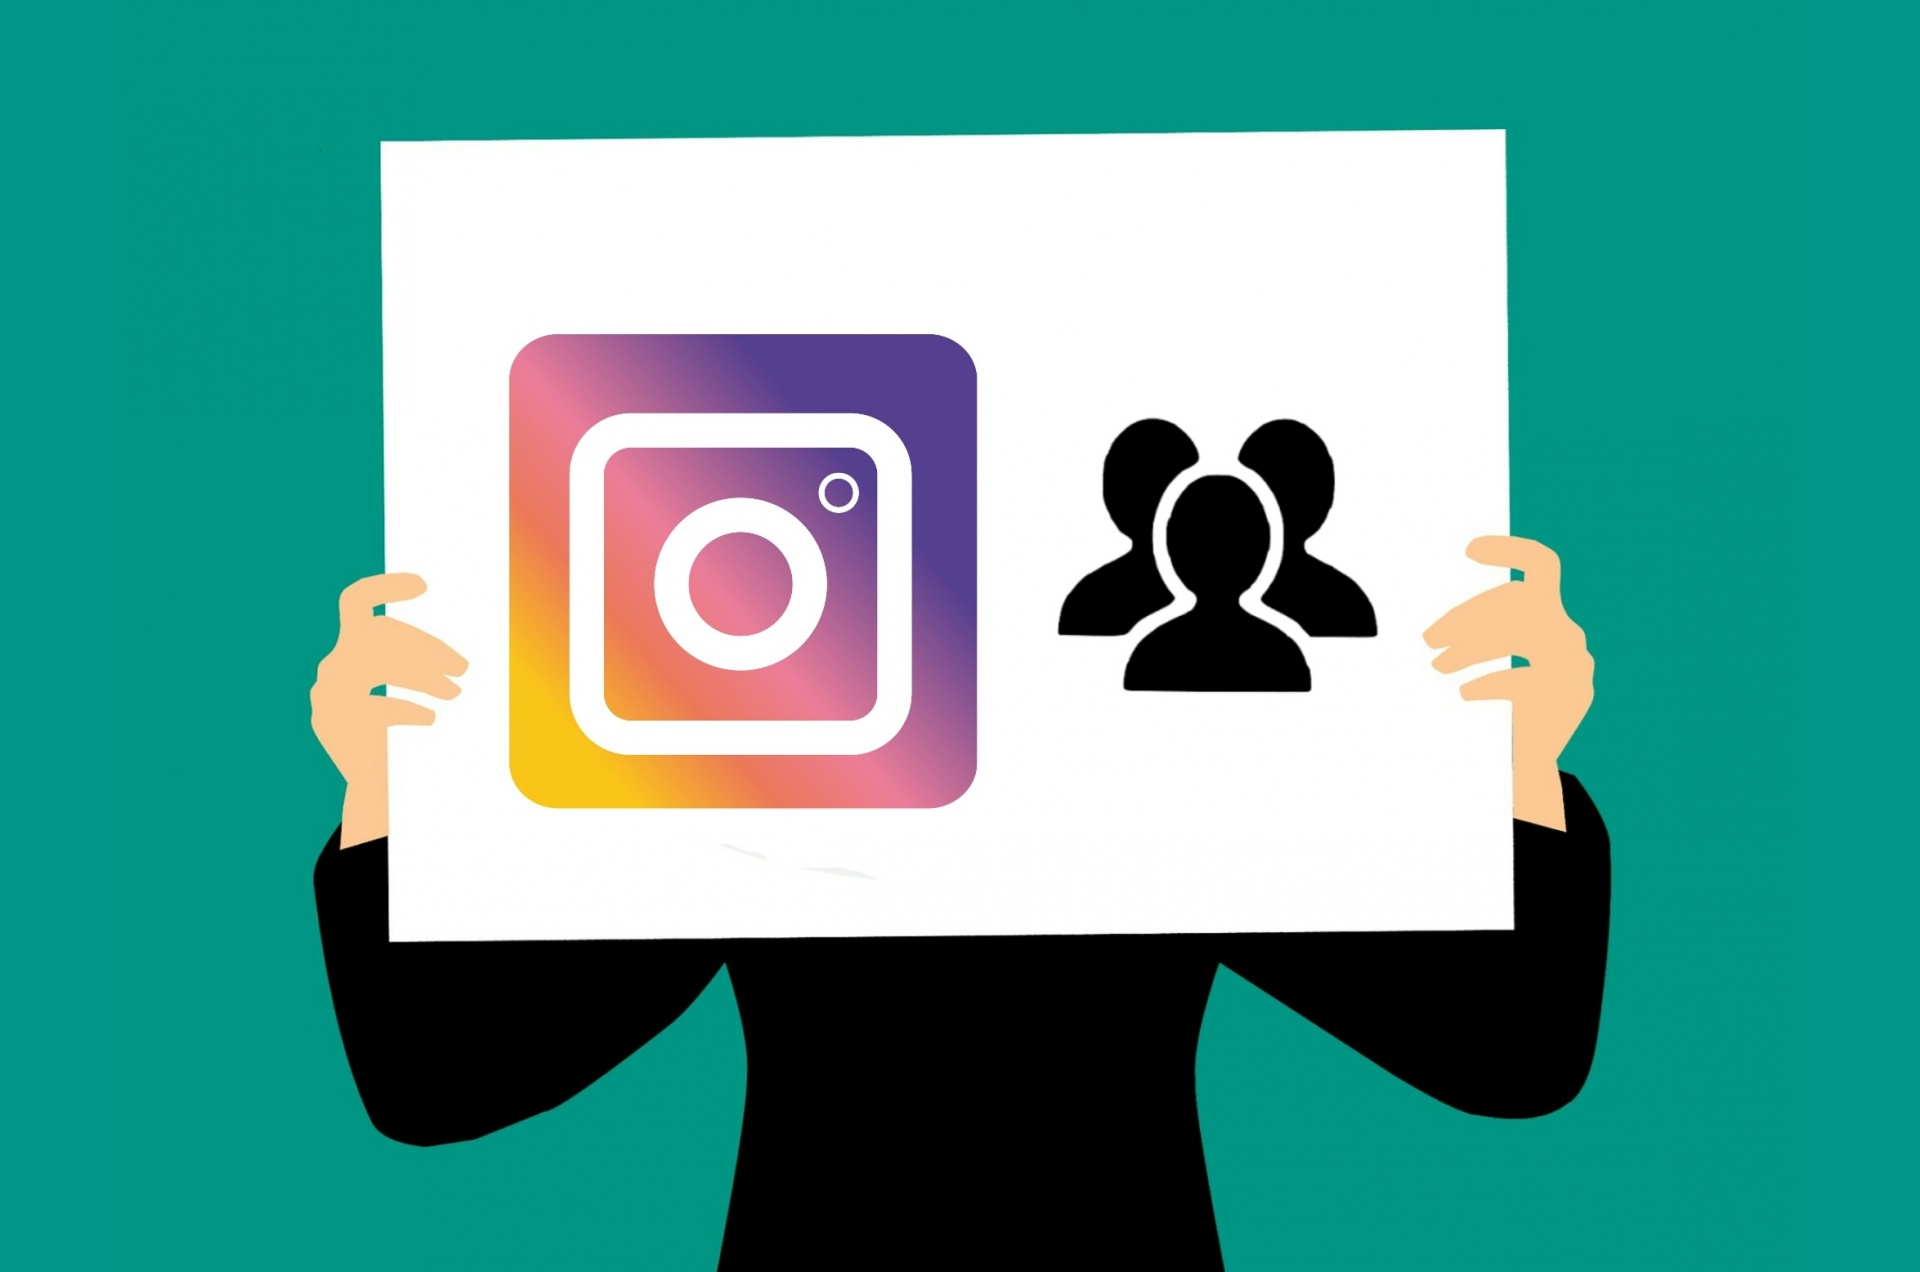 What are the benefits of buying us Instagram followers in 2021?